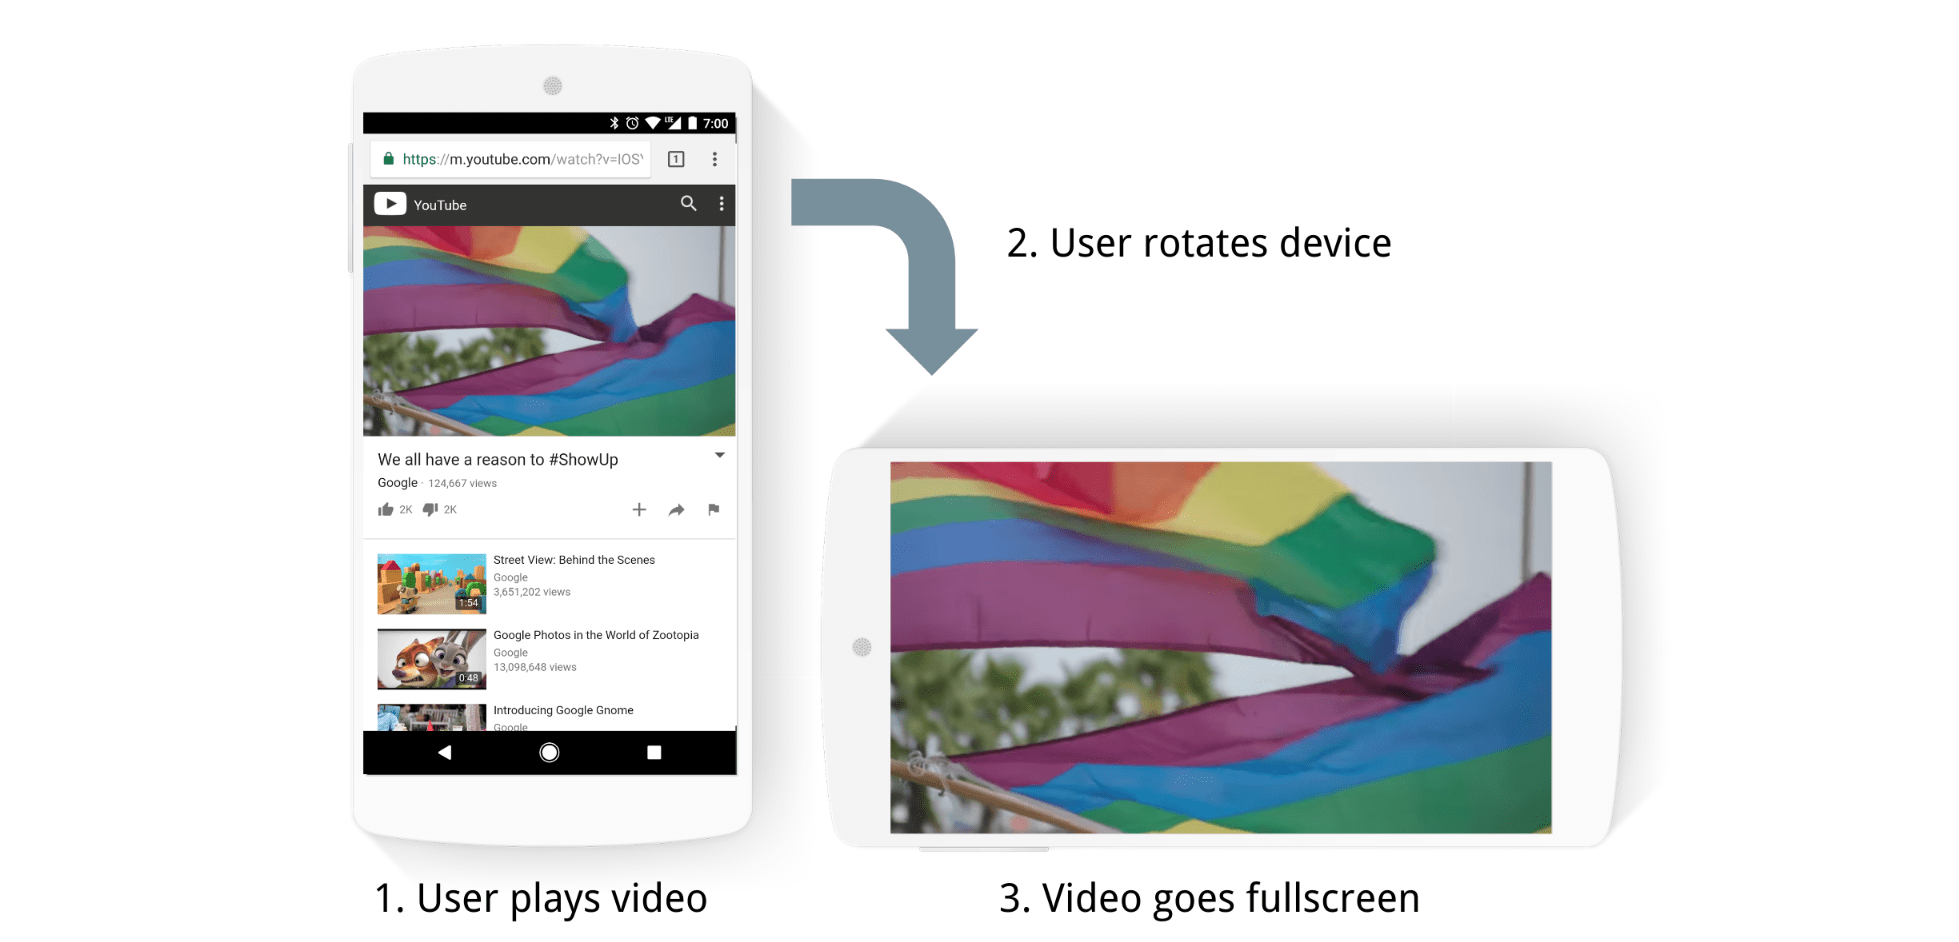 Automatic video fullscreen when device is rotated